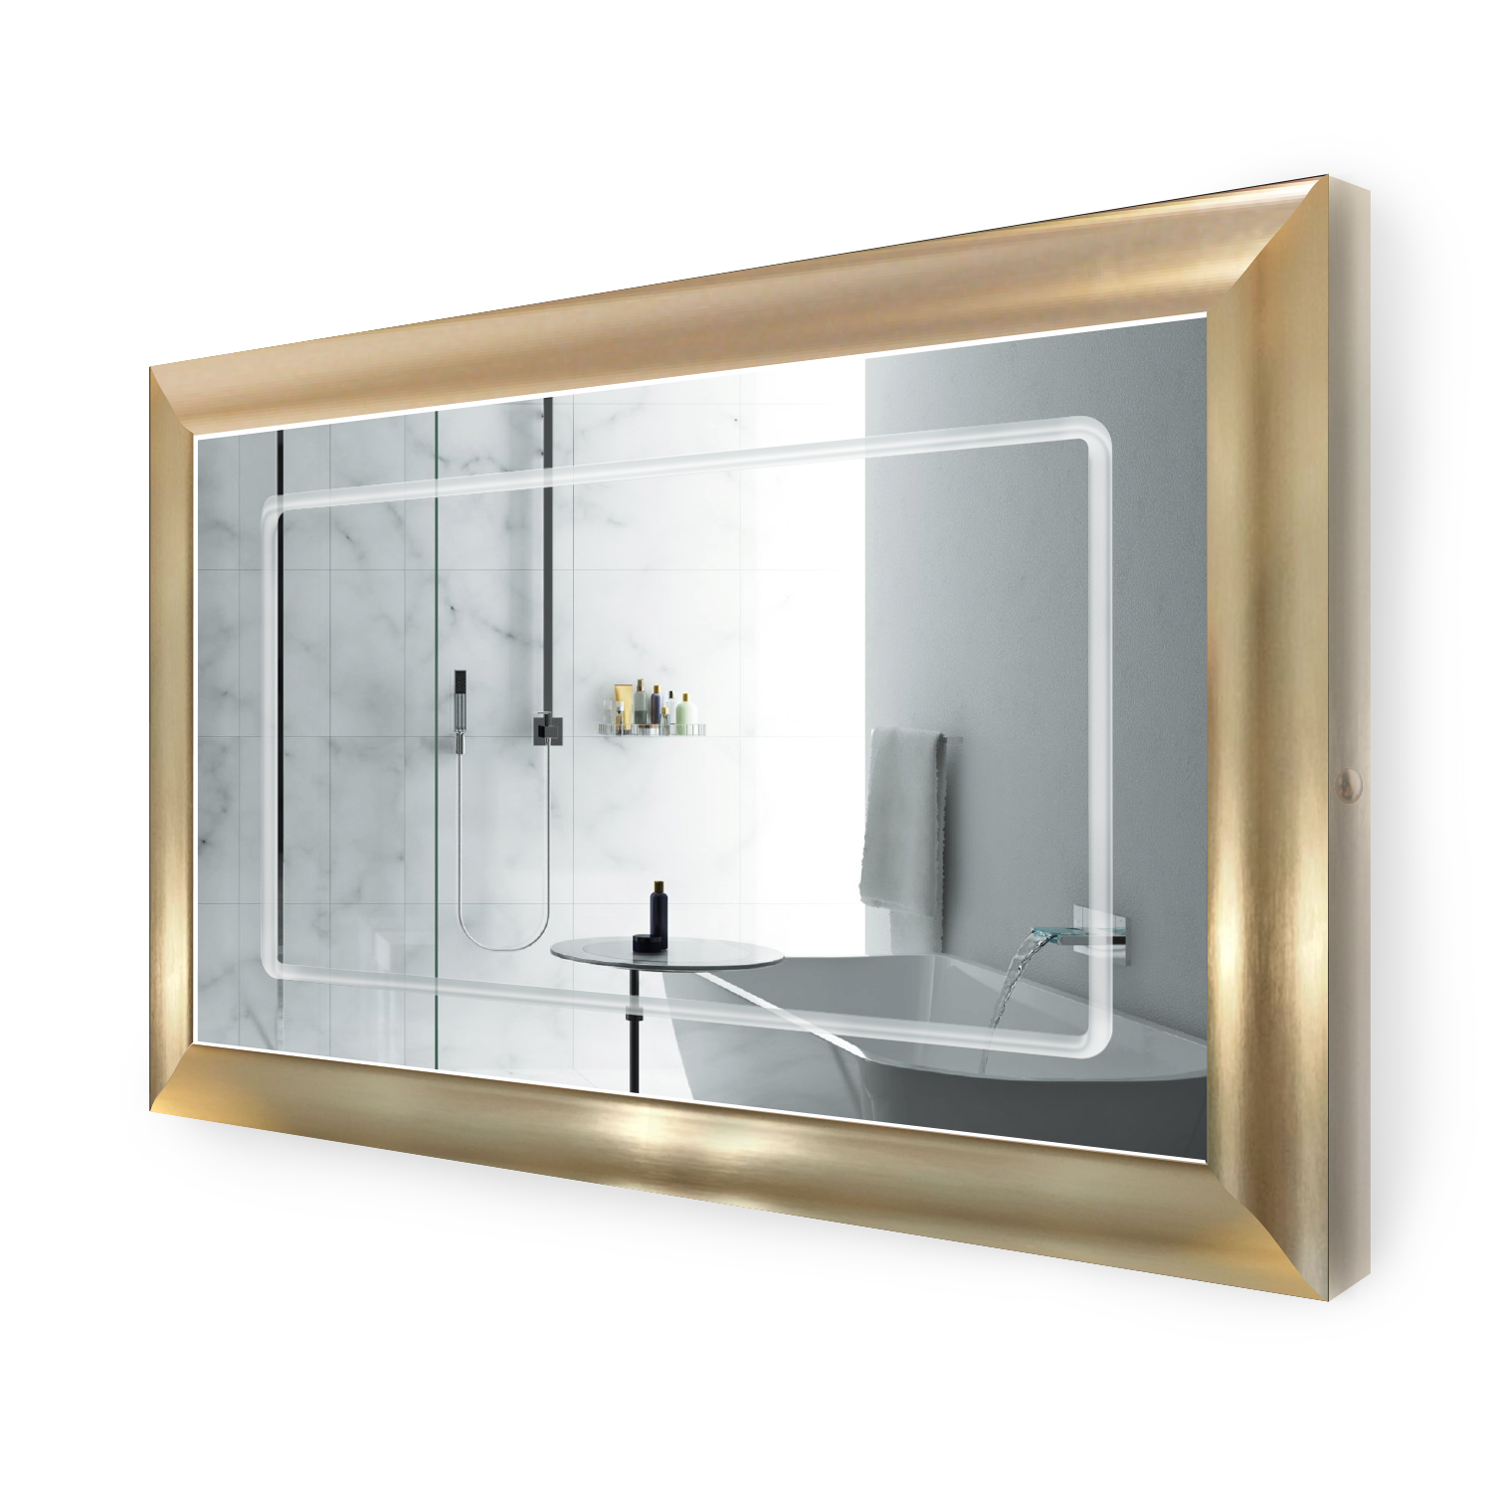 gold frame bathroom mirror led lighted 48 inch x 30 inch bathroom gold frame mirror 18530